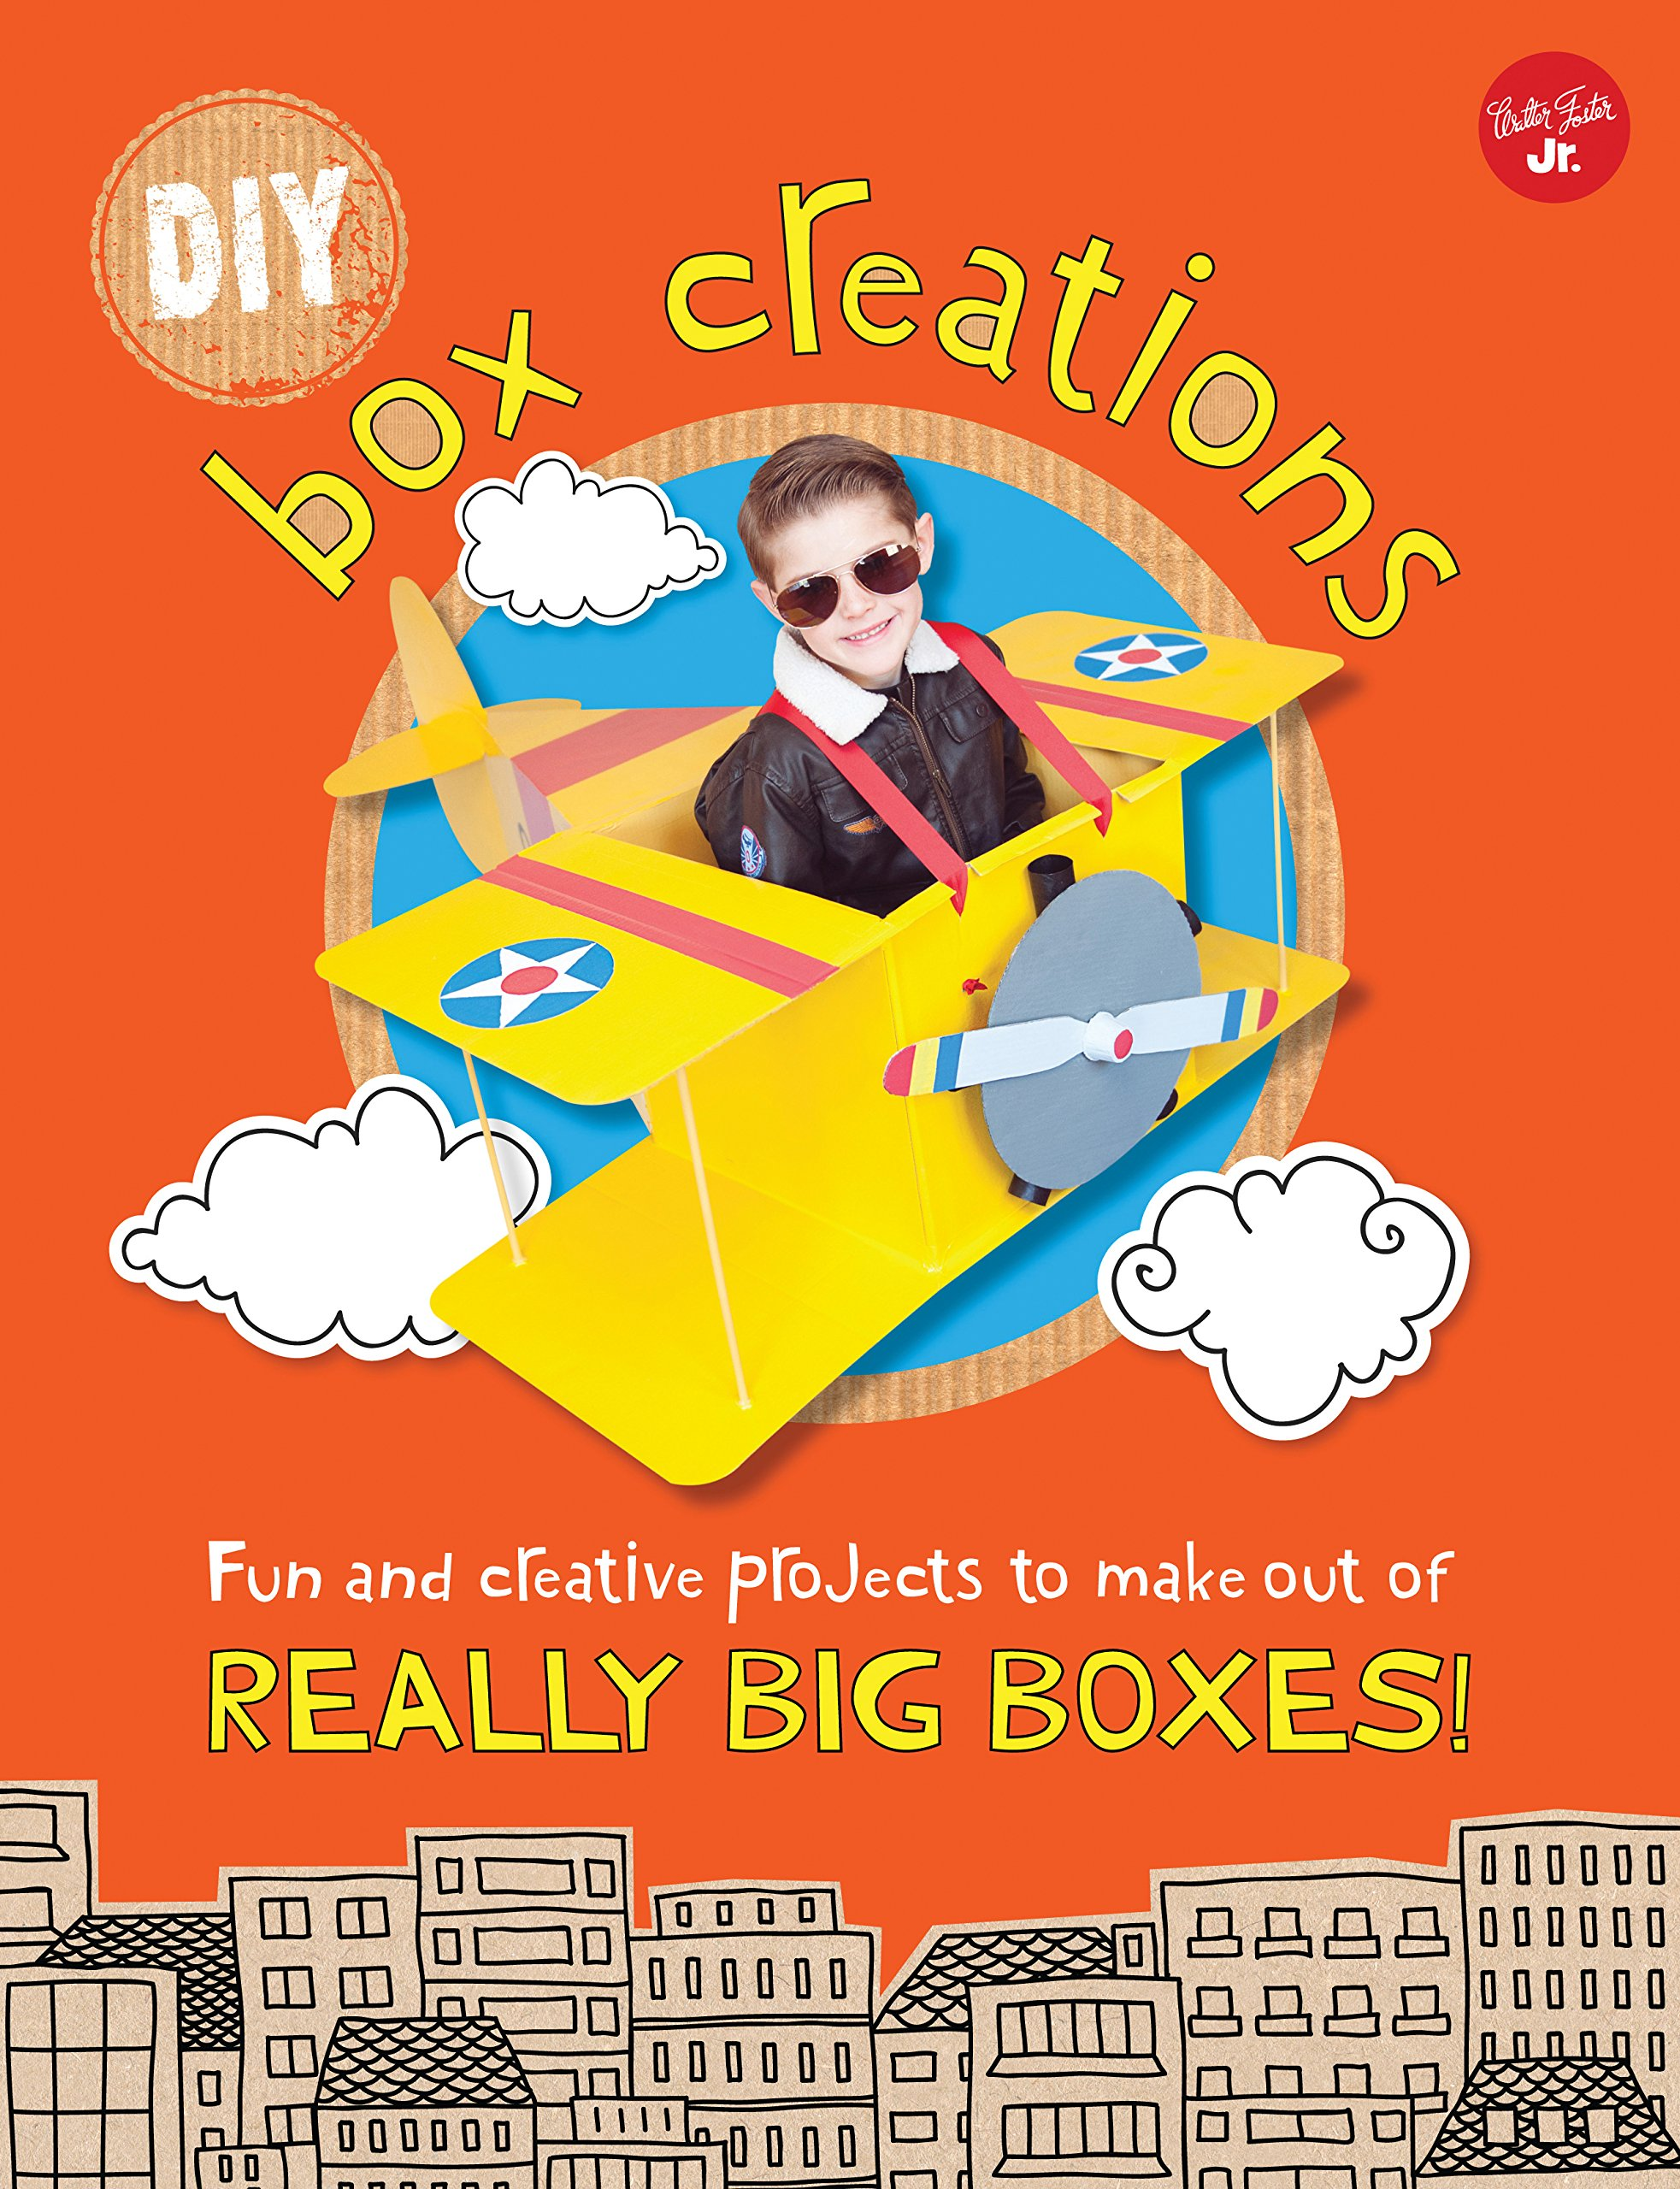 DIY Box Creations: Fun and creative projects to make out of REALLY BIG BOXES!